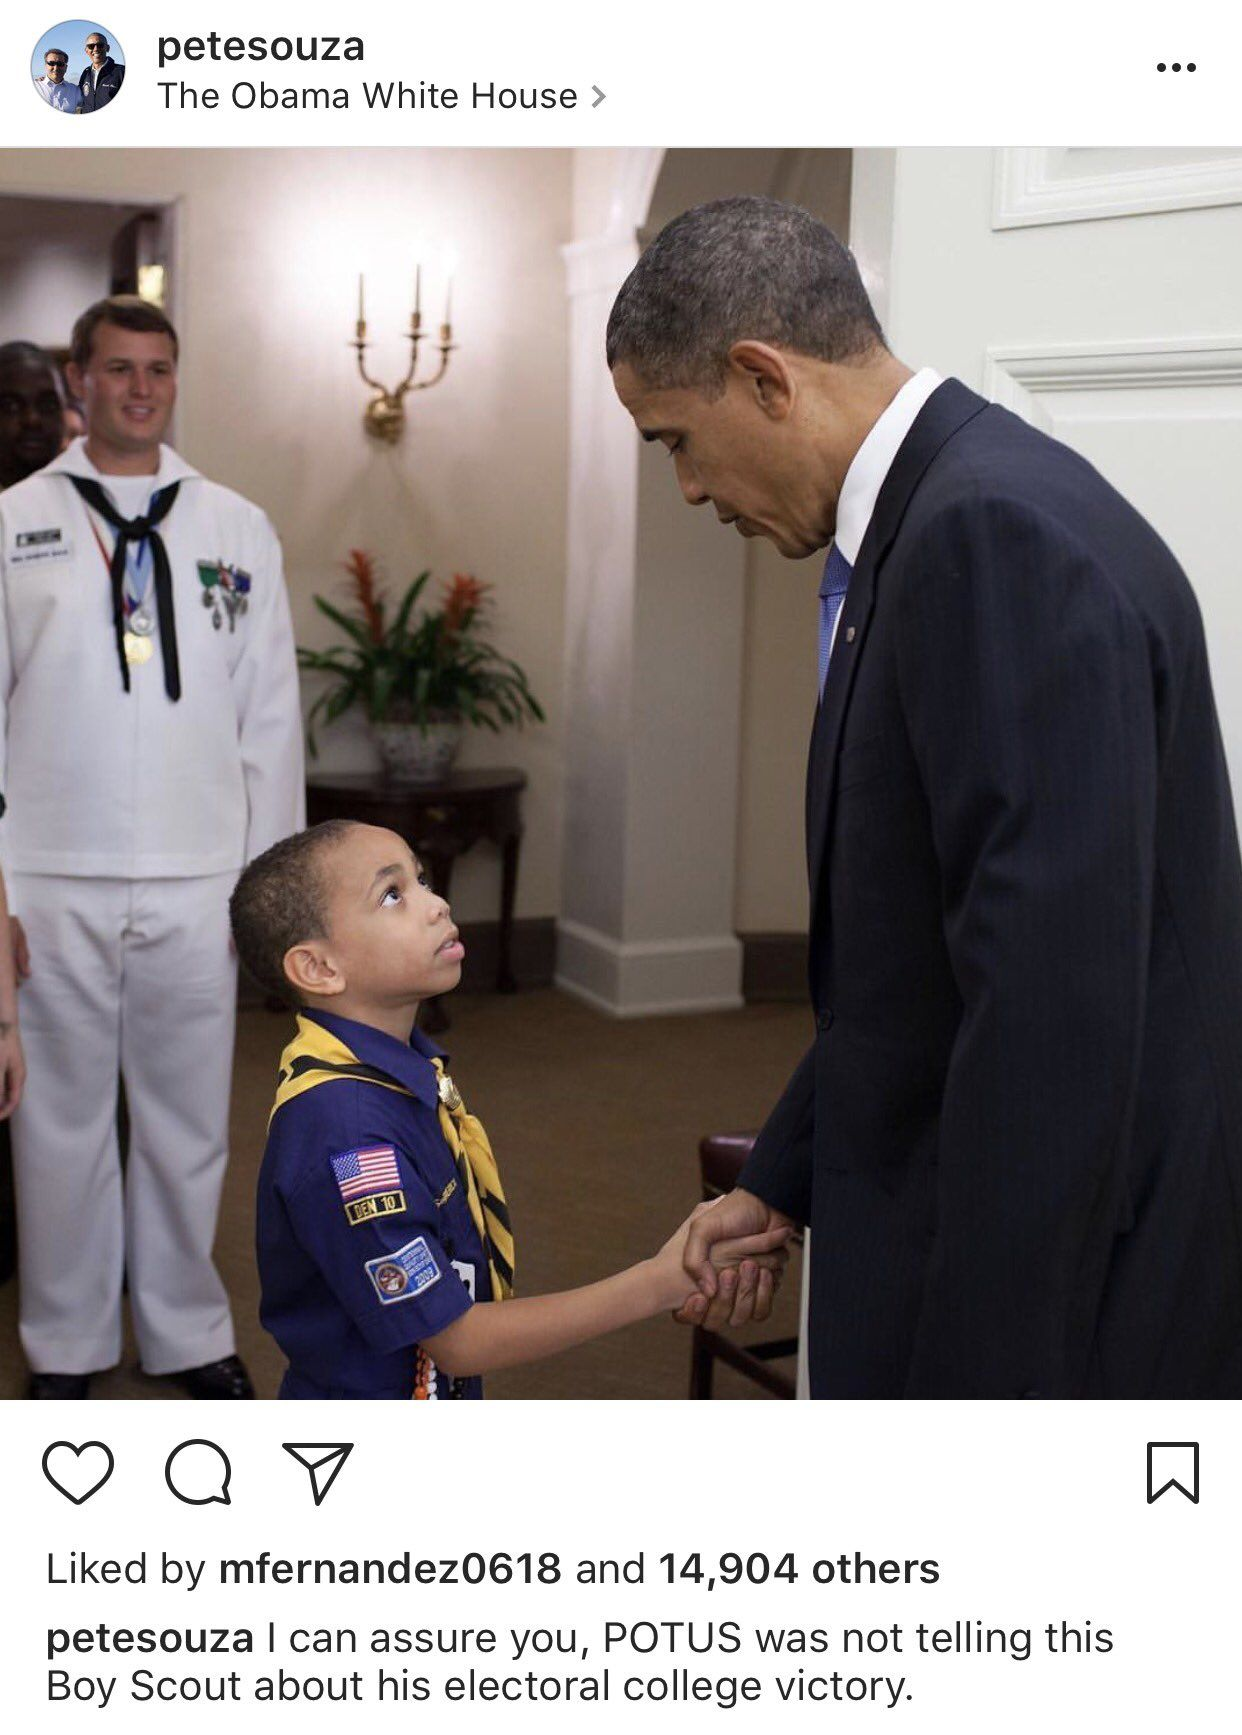 Trump Just Rallied Boy Scouts To Boo Obama. Obama's Photographer's Response Is Perfect